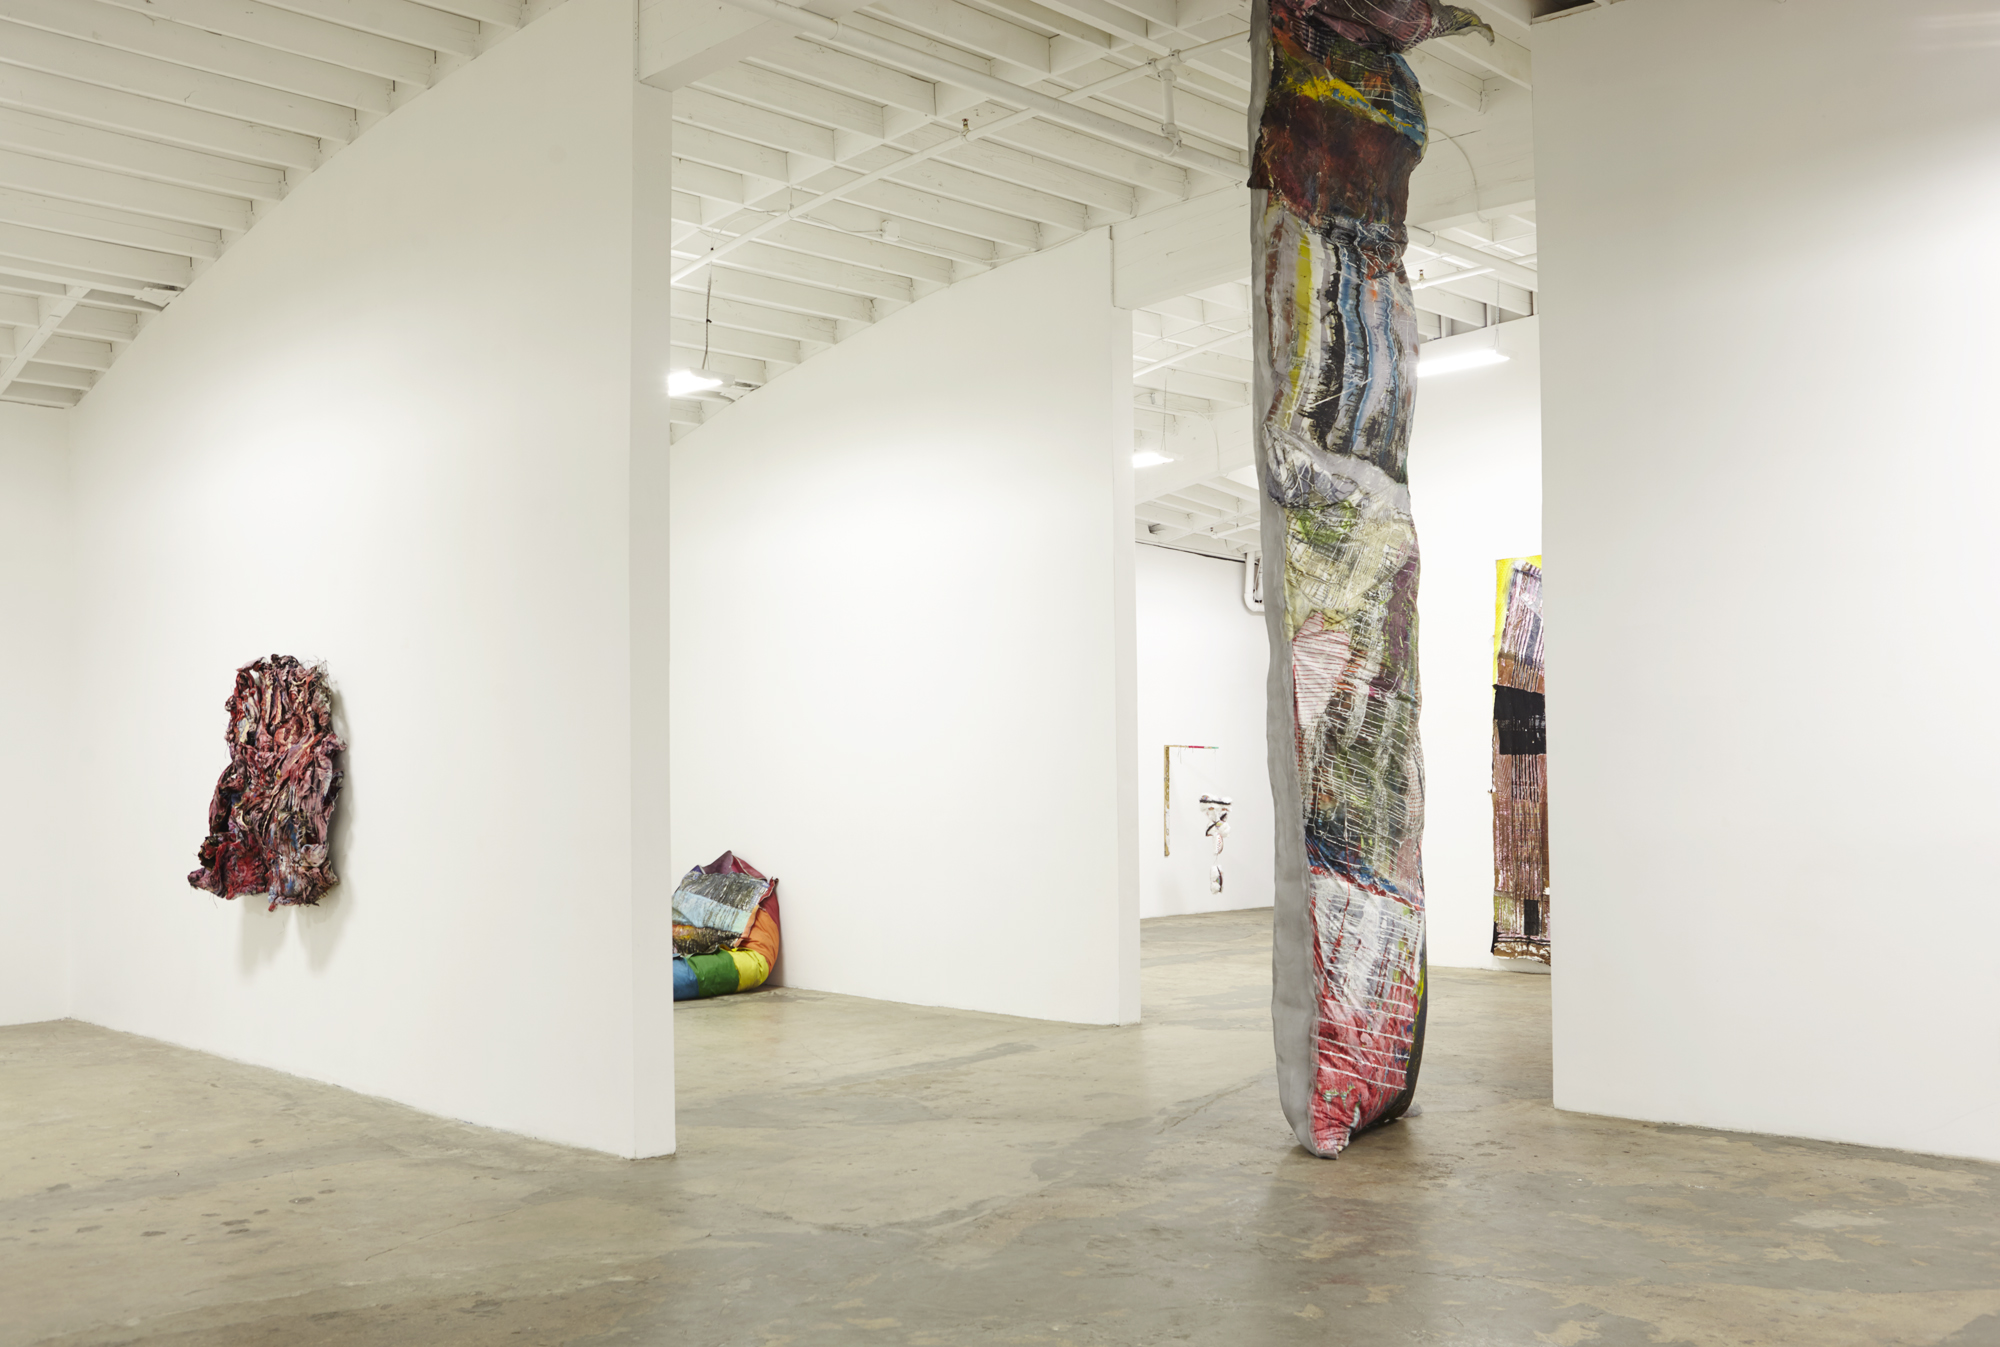 Marwa Abdul-Rahman, Open That Shit Wide Let Me See How Big Your Mouth Is (installation view) (2016). Image courtesy of the artist and Museum as Retail Space. Photo: Jason Barbagelott.